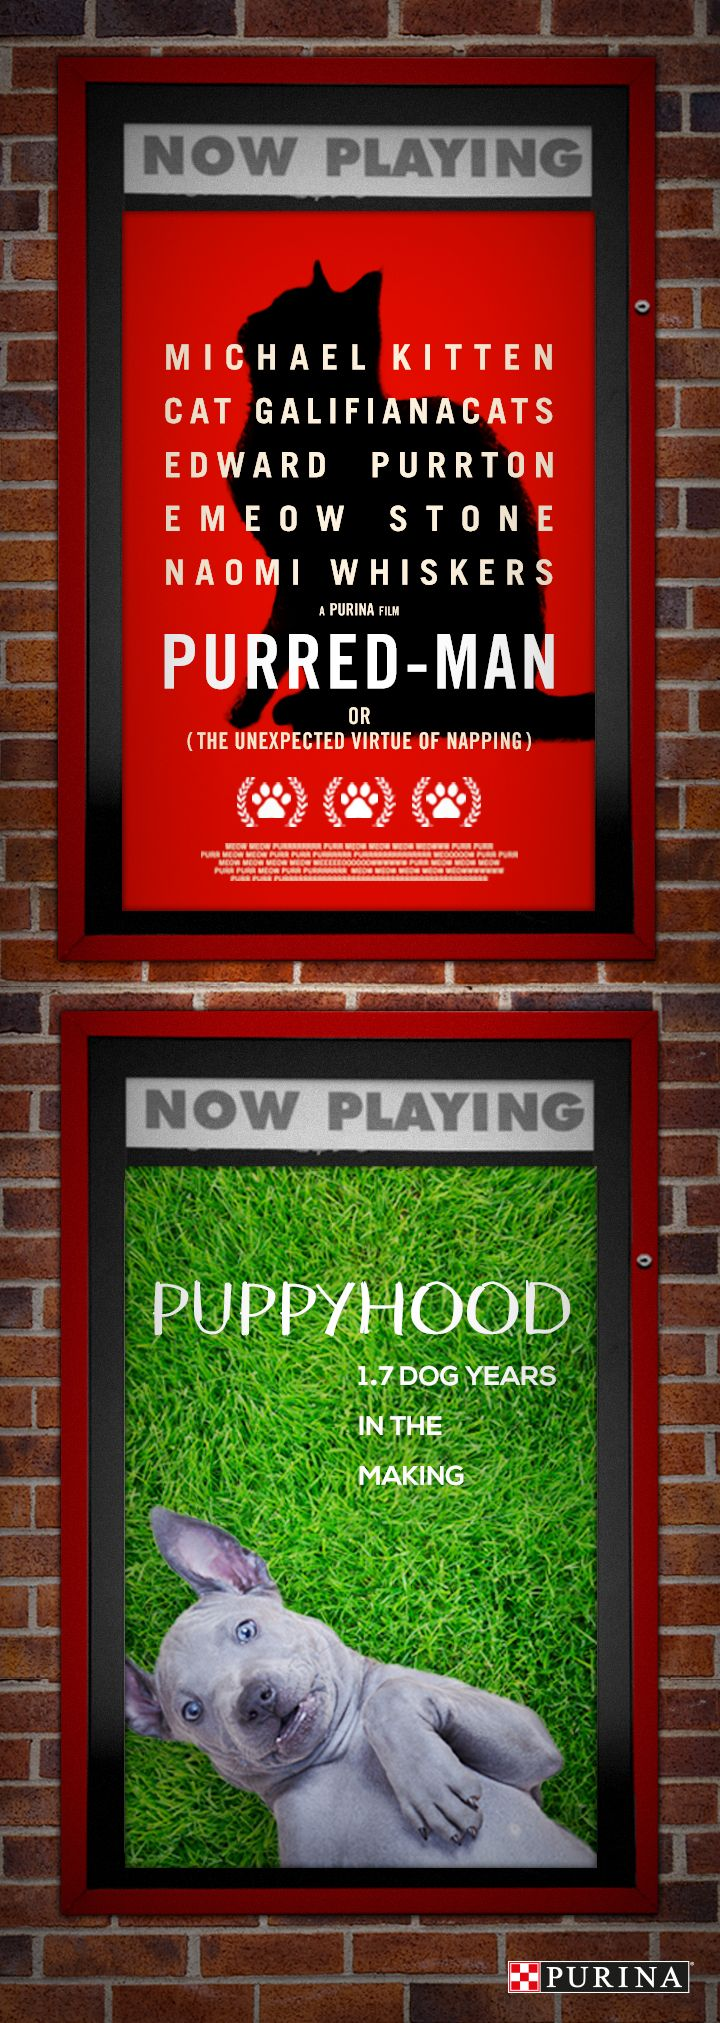 Looking for some new movies to watch? If you're a fan of cat humor and funny dogs, we've got you covered with these new films starring your favorite pets.